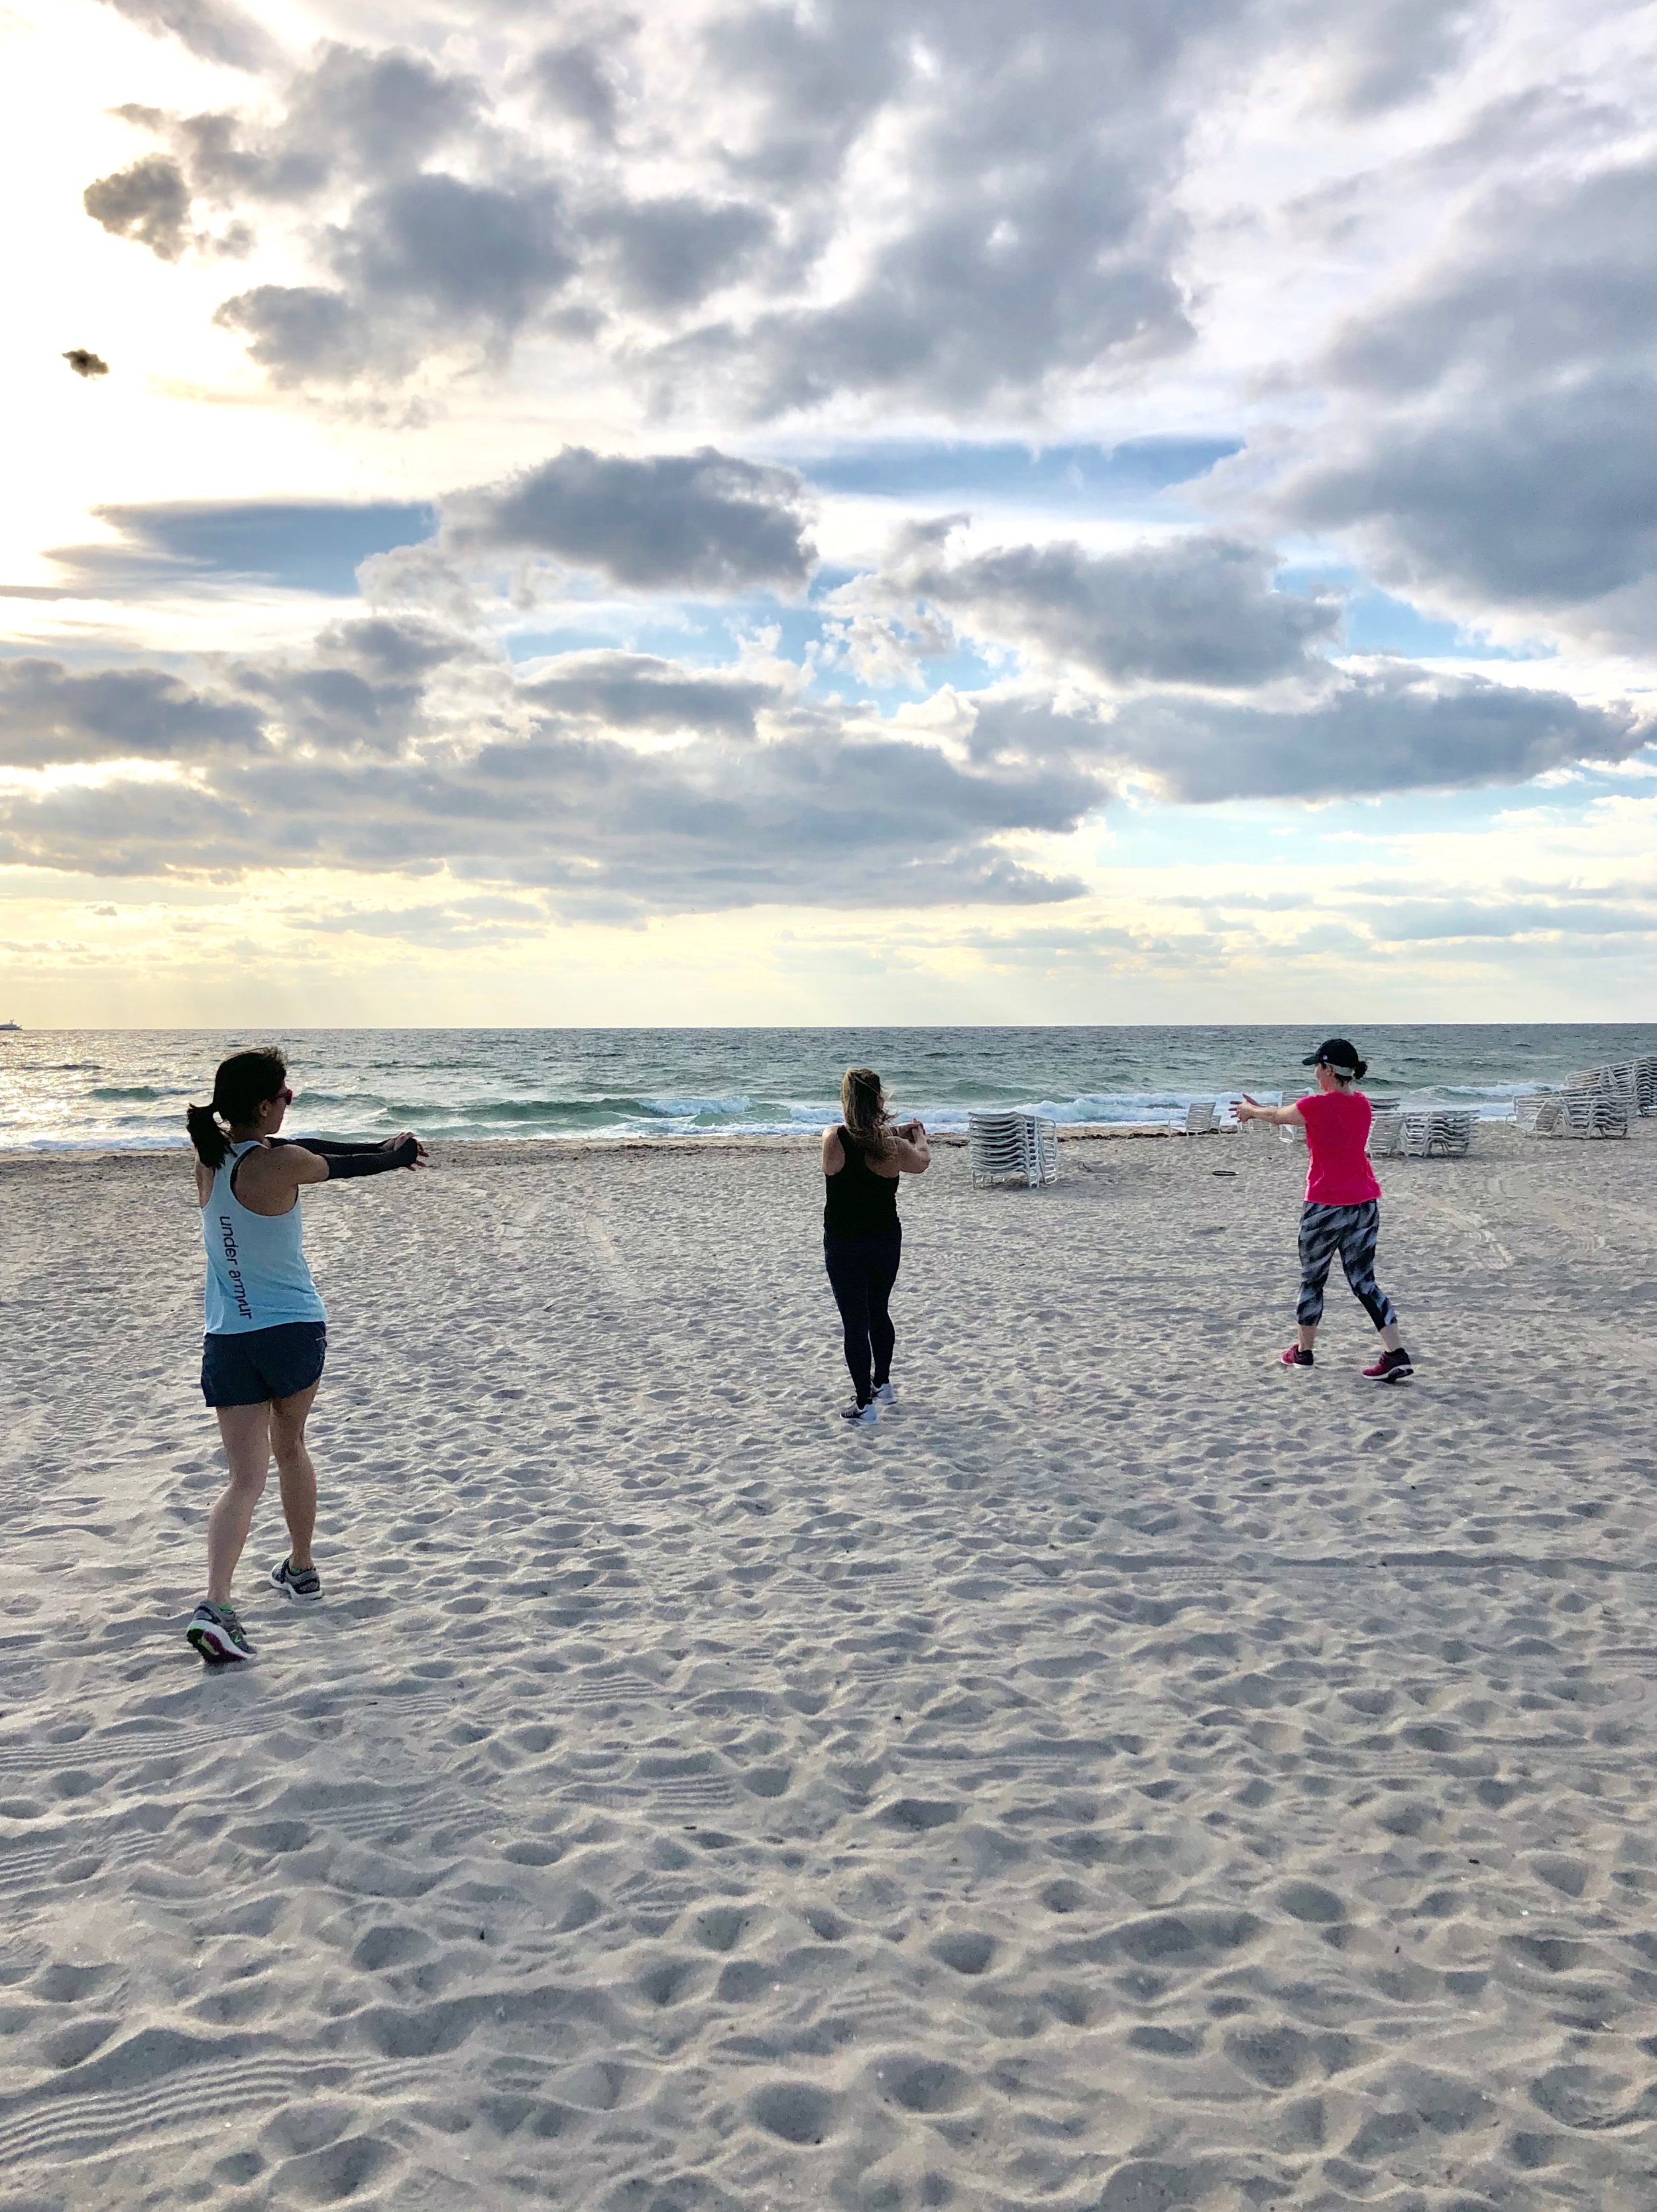 Boot camp guests workout on beach during fitness vacation.